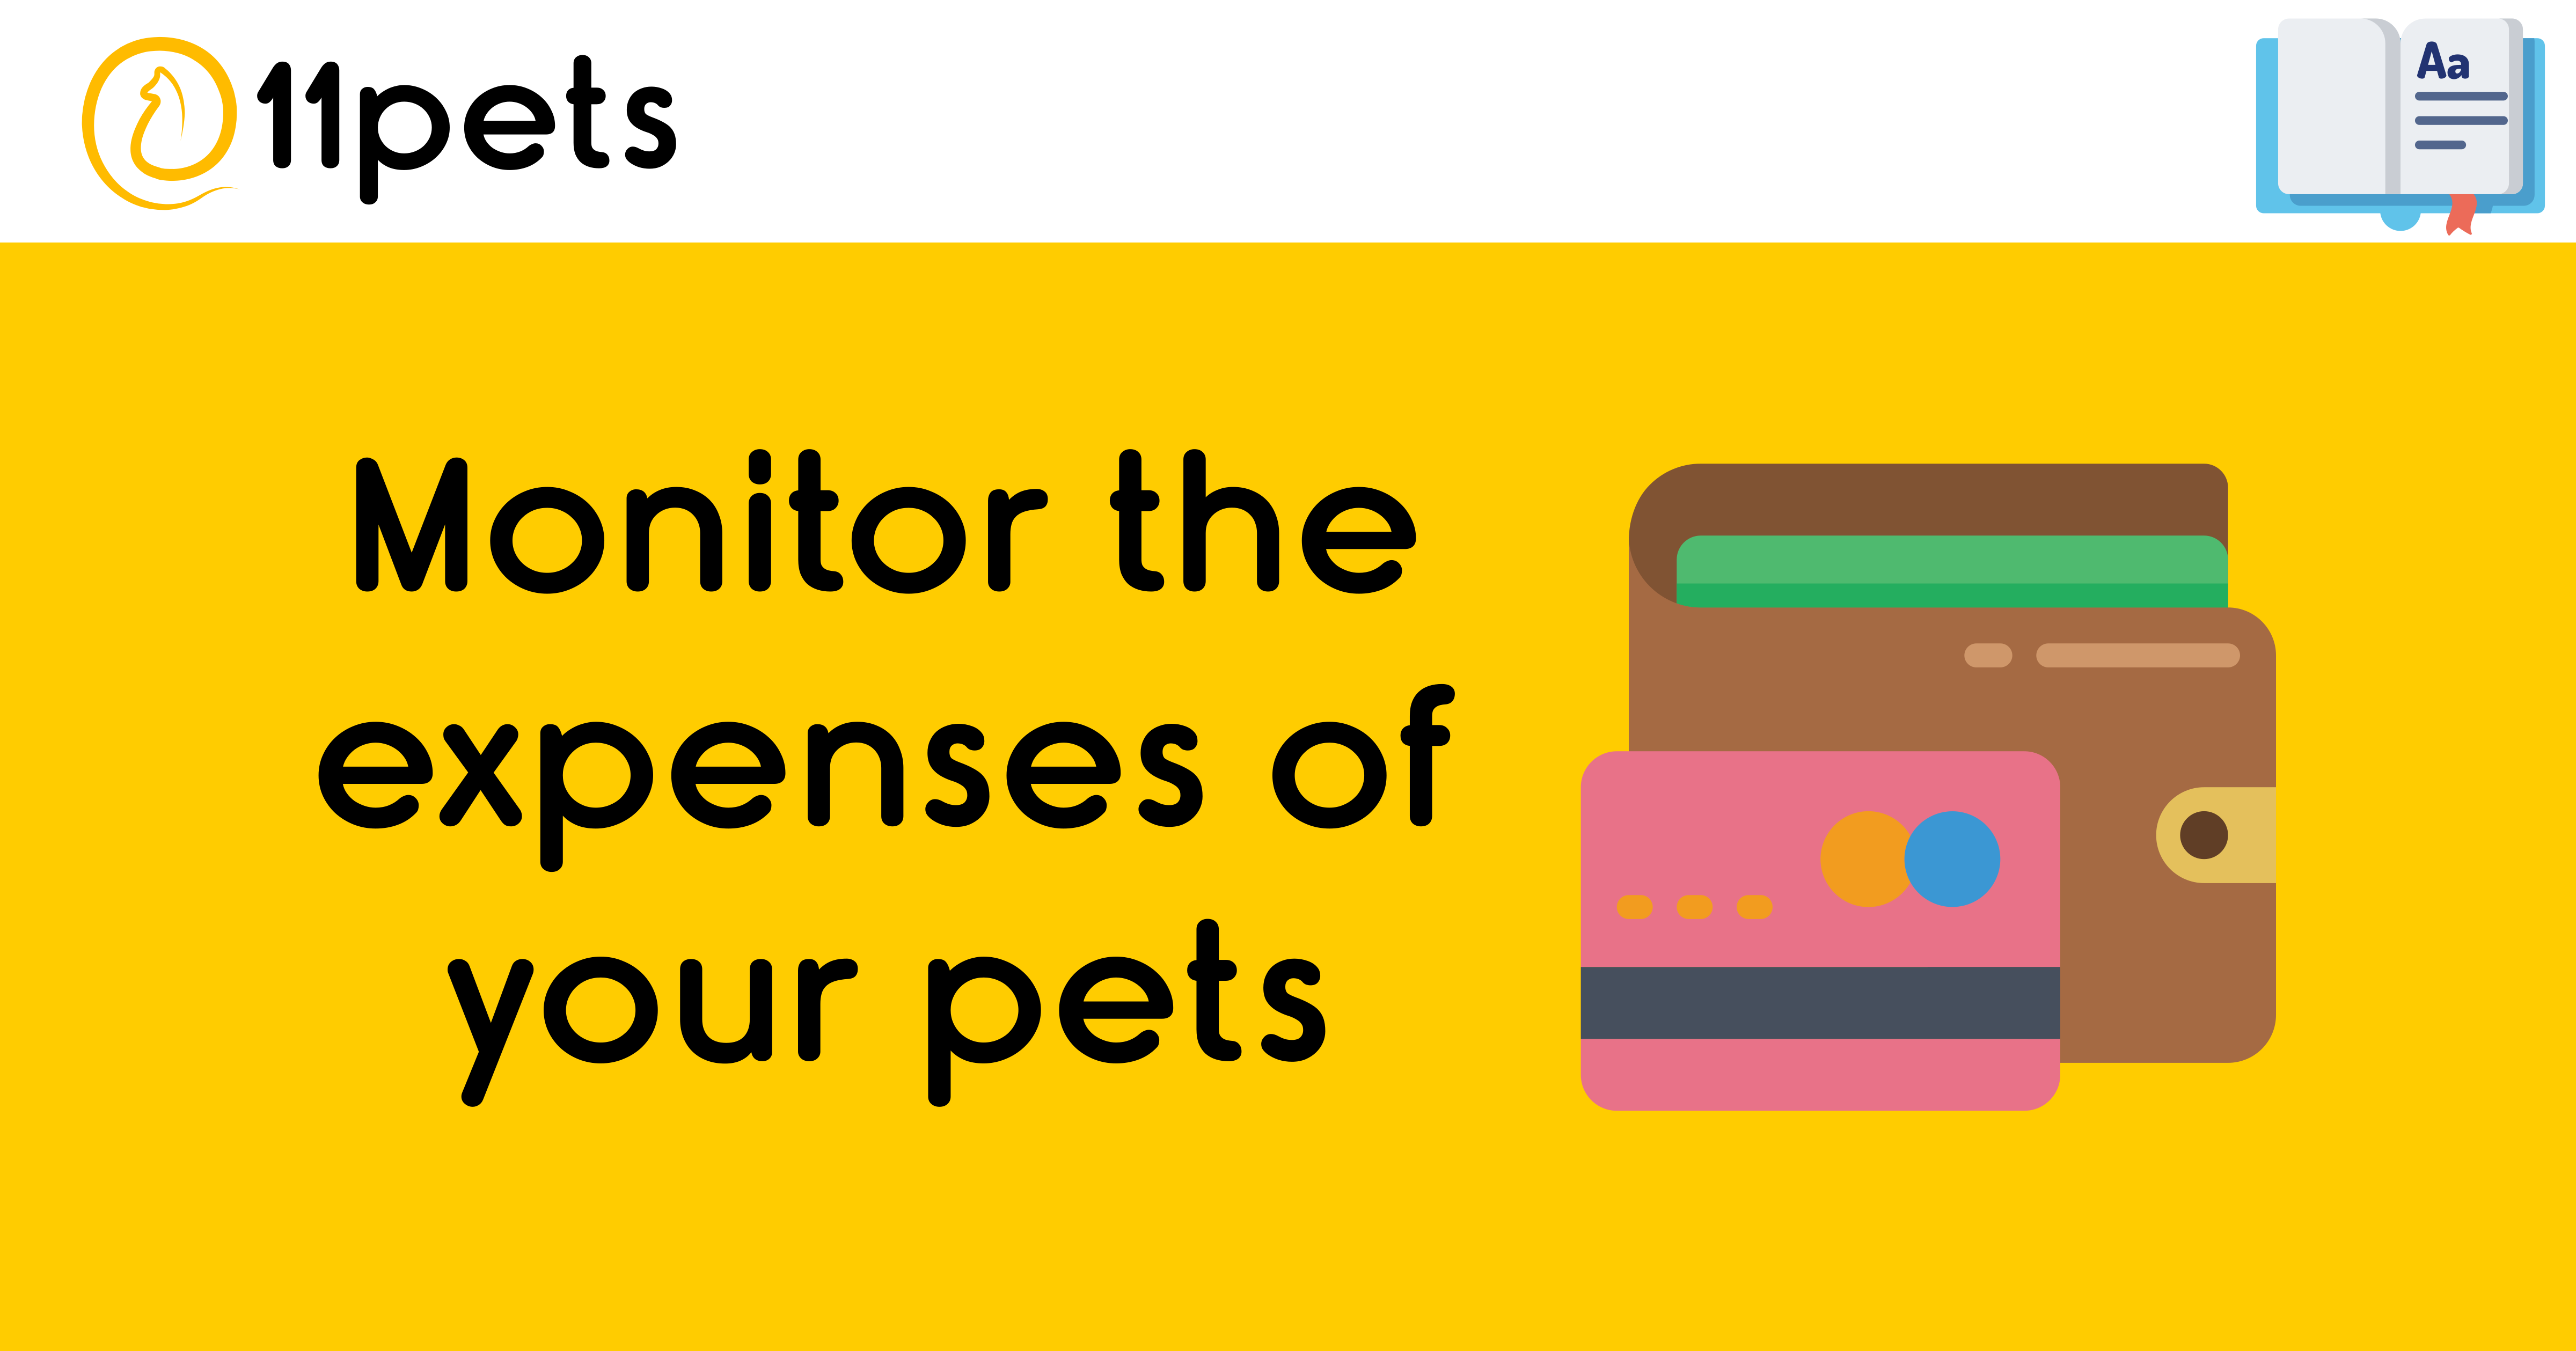 Monitor the expenses of your pets